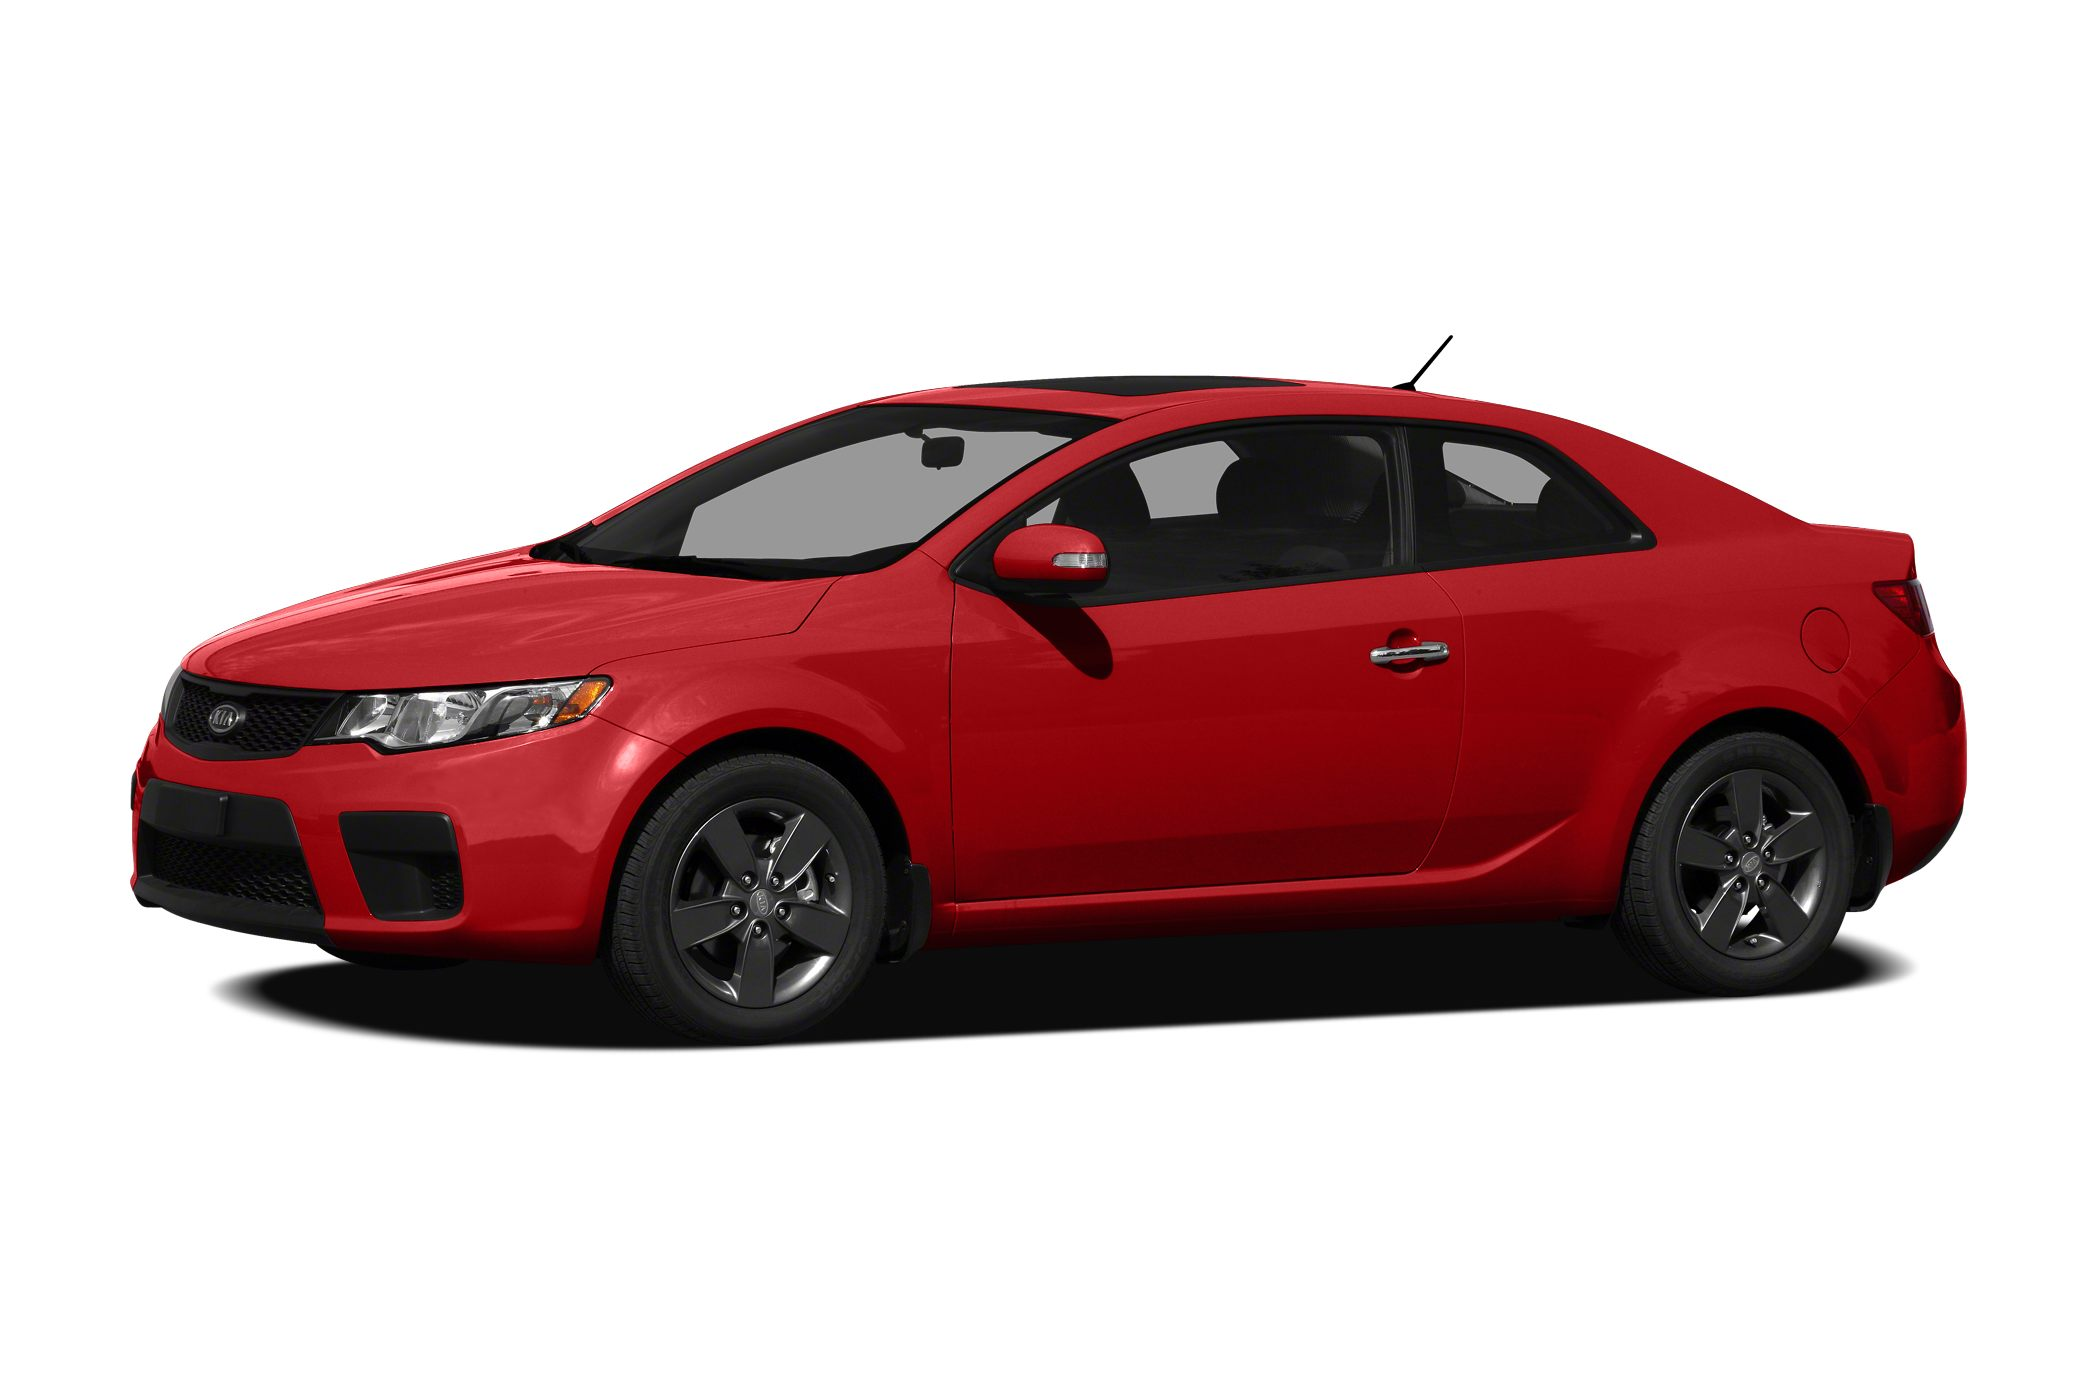 2012 Kia Forte Koup SX Coupe for sale in New York for $8,500 with 4,878 miles.